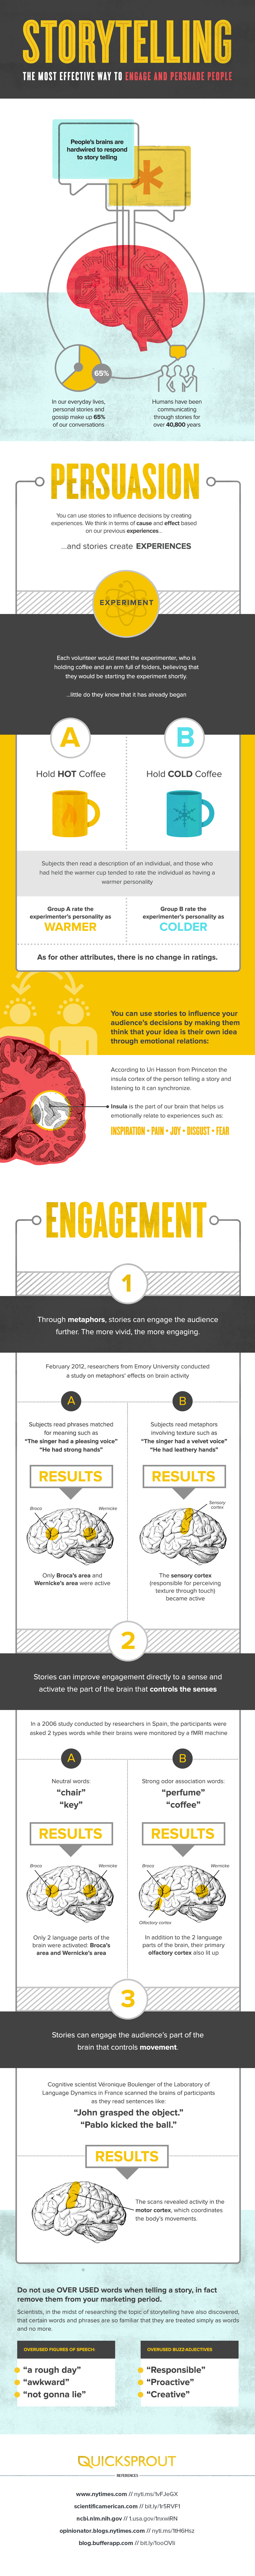 How to Engage and Persuade People Through Storytelling